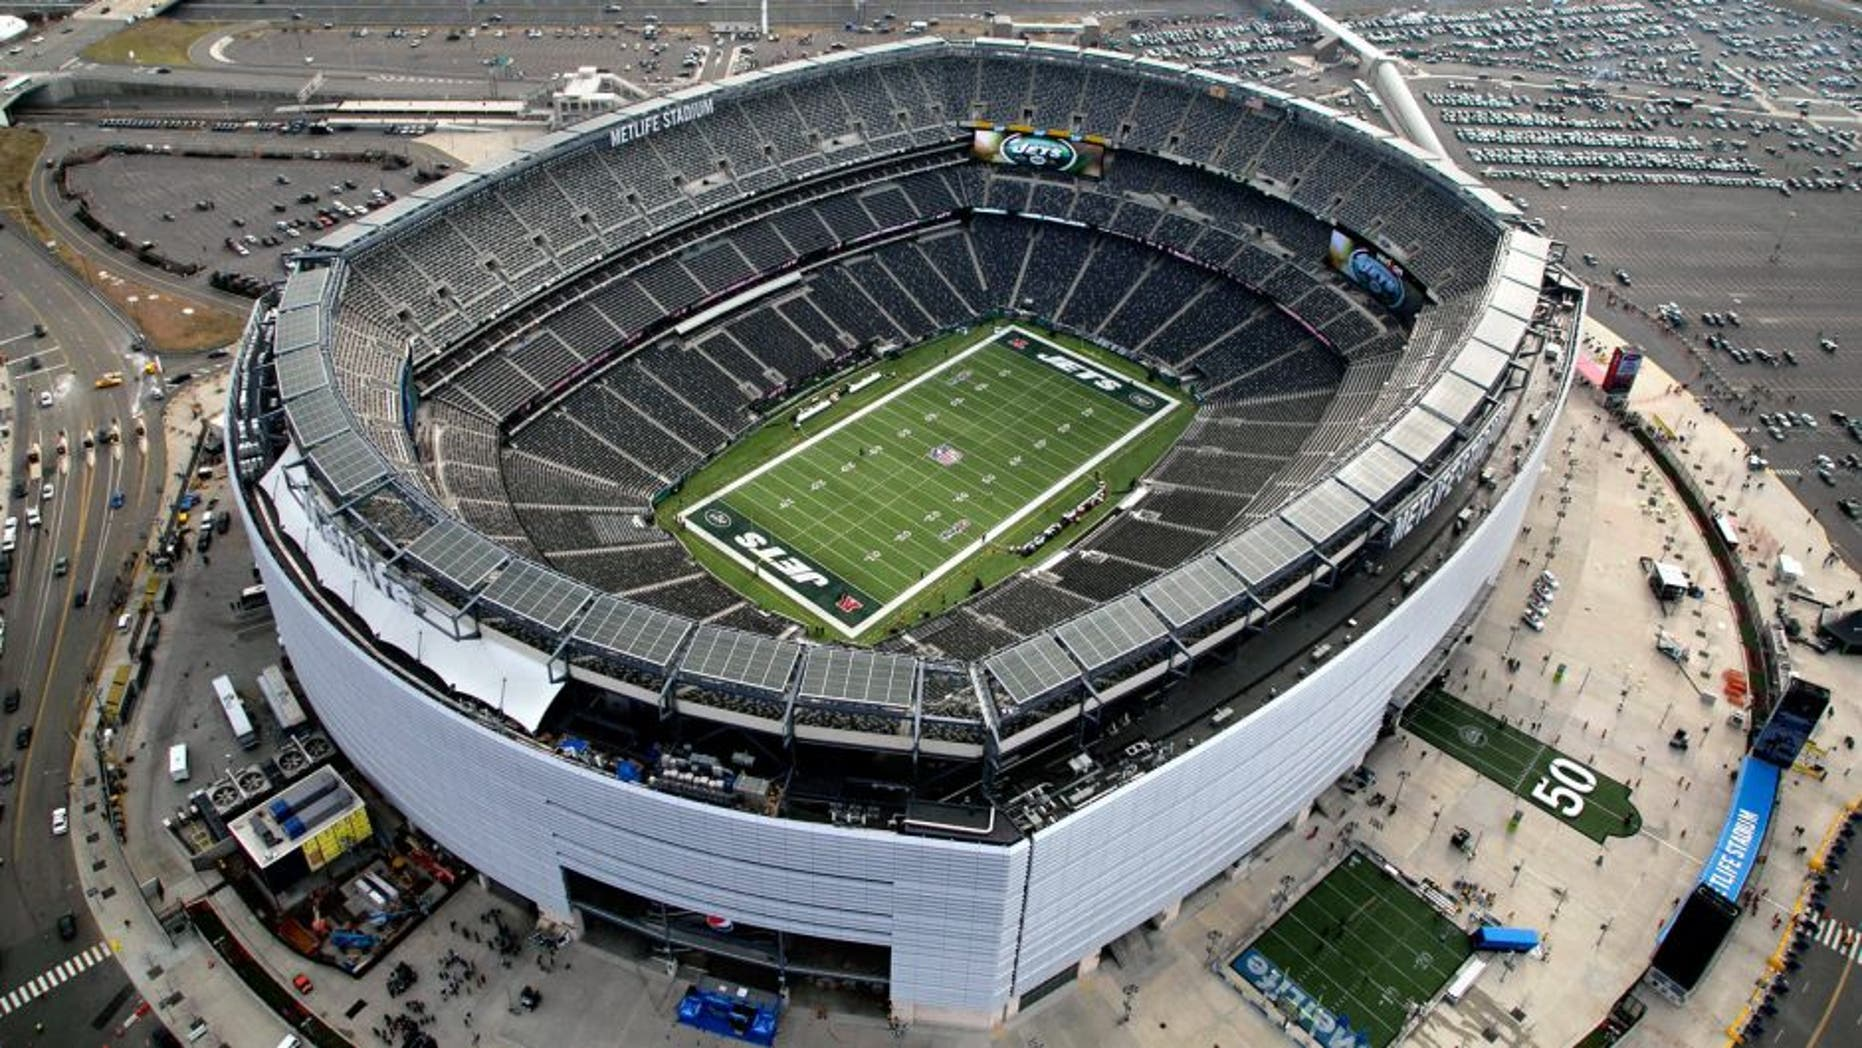 In this Dec. 1, 2013, photo, MetLife Stadium is seen in an aerial photo in East Rutherford, N.J. Super Bowl tickets are tough to acquire. There's only so many seats in the stadium, and several are filled by corporations and sponsors. Then, when you factor in price and logistics, it makes it all that more difficult, even with the rise of the secondary market on the internet. Things won't be any easier this year, as the NFL houses its first cold-weather Super Bowl on Feb. 2 at MetLife Stadium with the New York skyline as a backdrop. (AP Photo/Mark Lennihan)